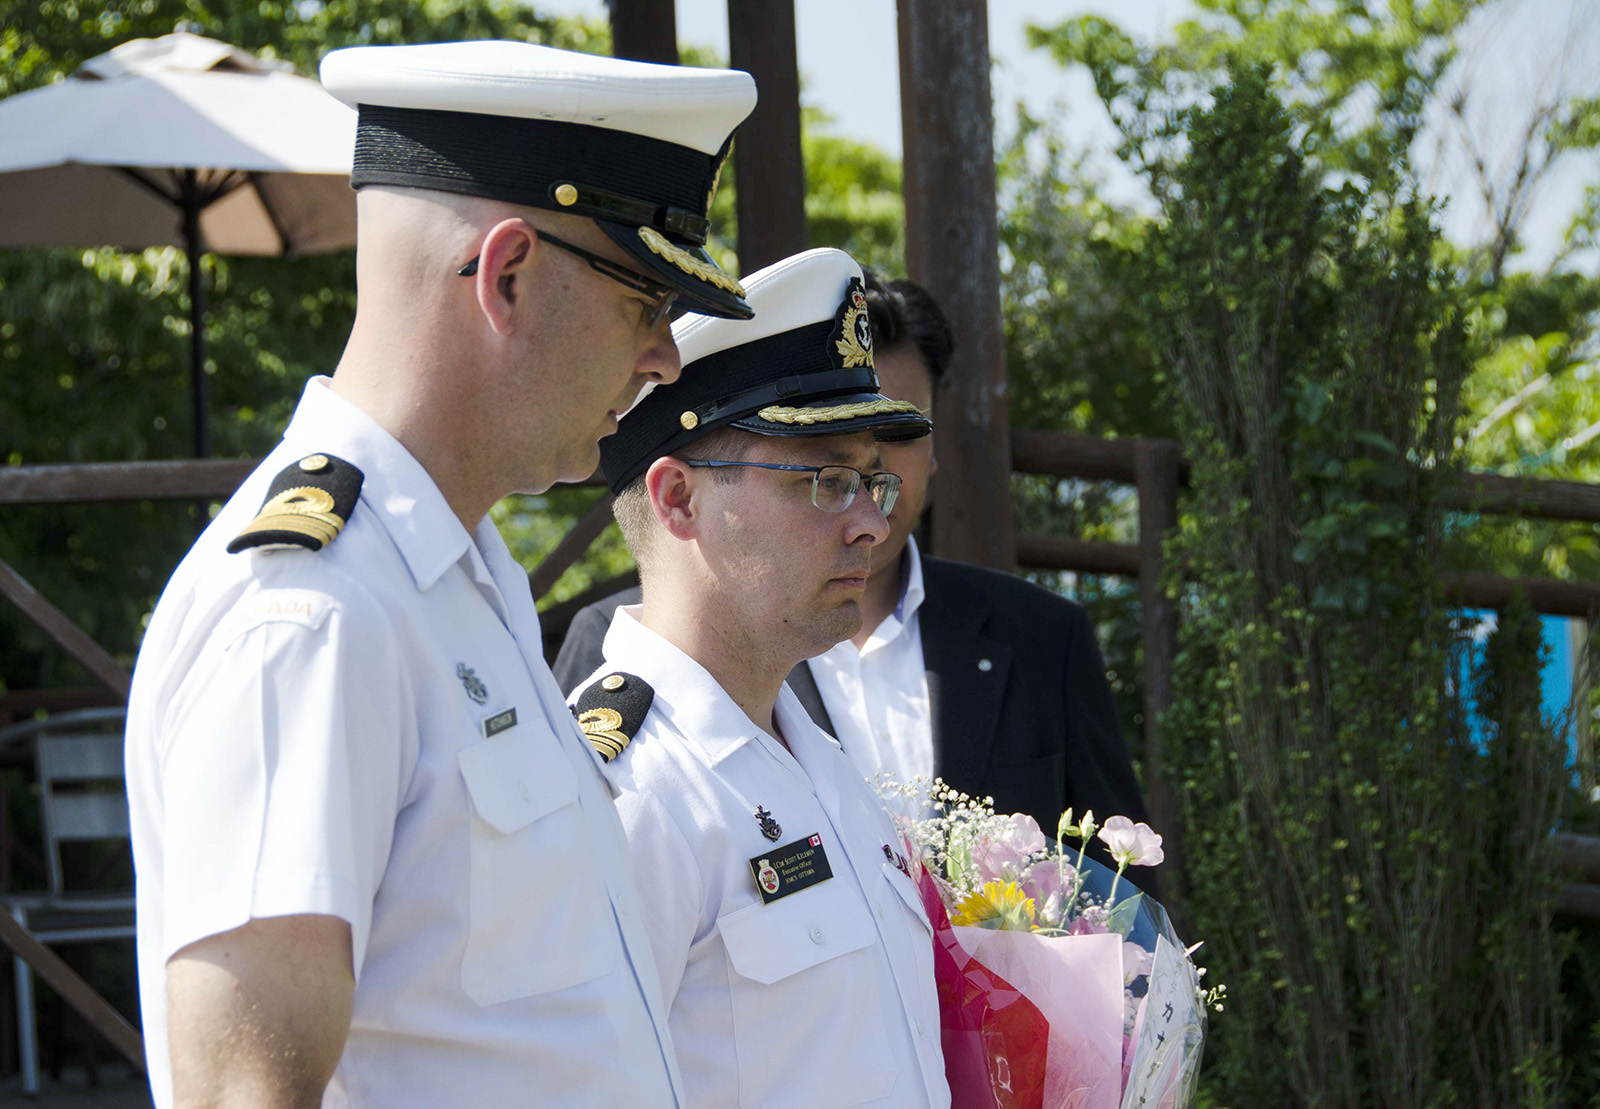 Commander Jeff Hutchinson, Commanding Officer, HMCS Winnipeg, and Lieutenant-Commander Scott Kelemen, Executive Officer, HMCS Ottawa, lay flowers at a memorial for the victims of the 2011 Tohoku earthquake and tsunami.